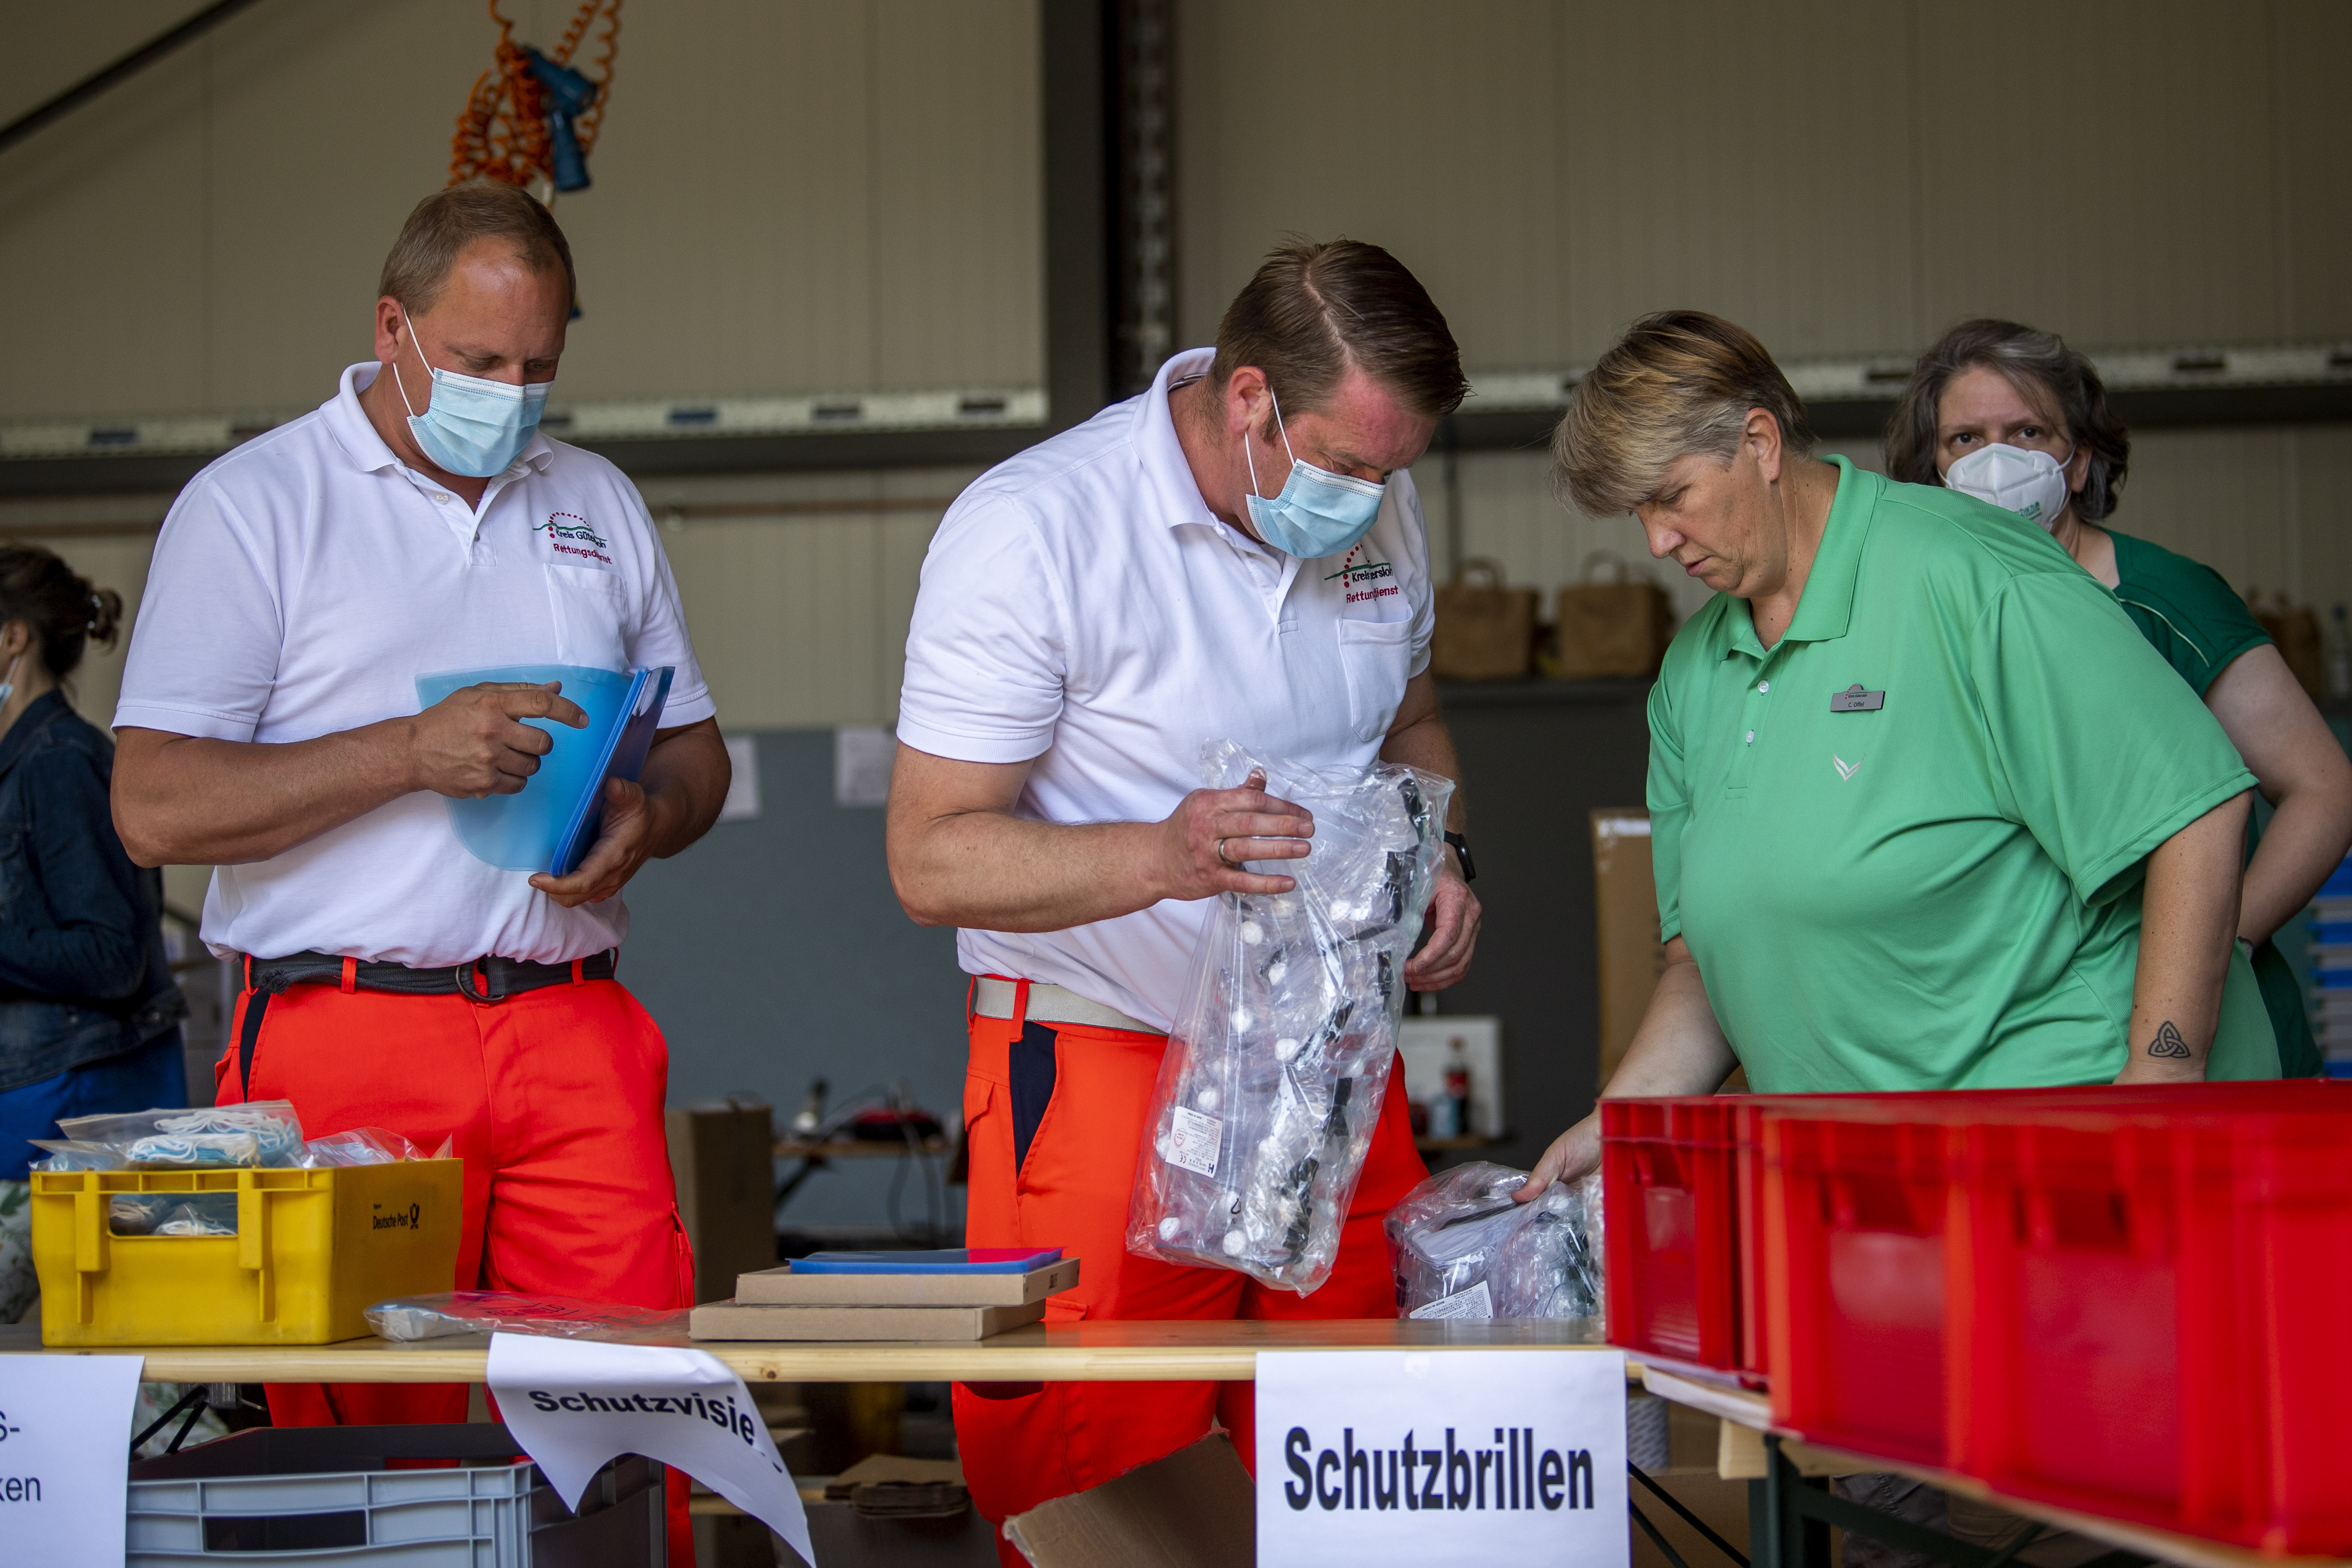 Mobile teams testing people on the coronavirus collect their equipment at a fire station in Rheda-Wiedenbrueck, Germany, June 23, 2020.